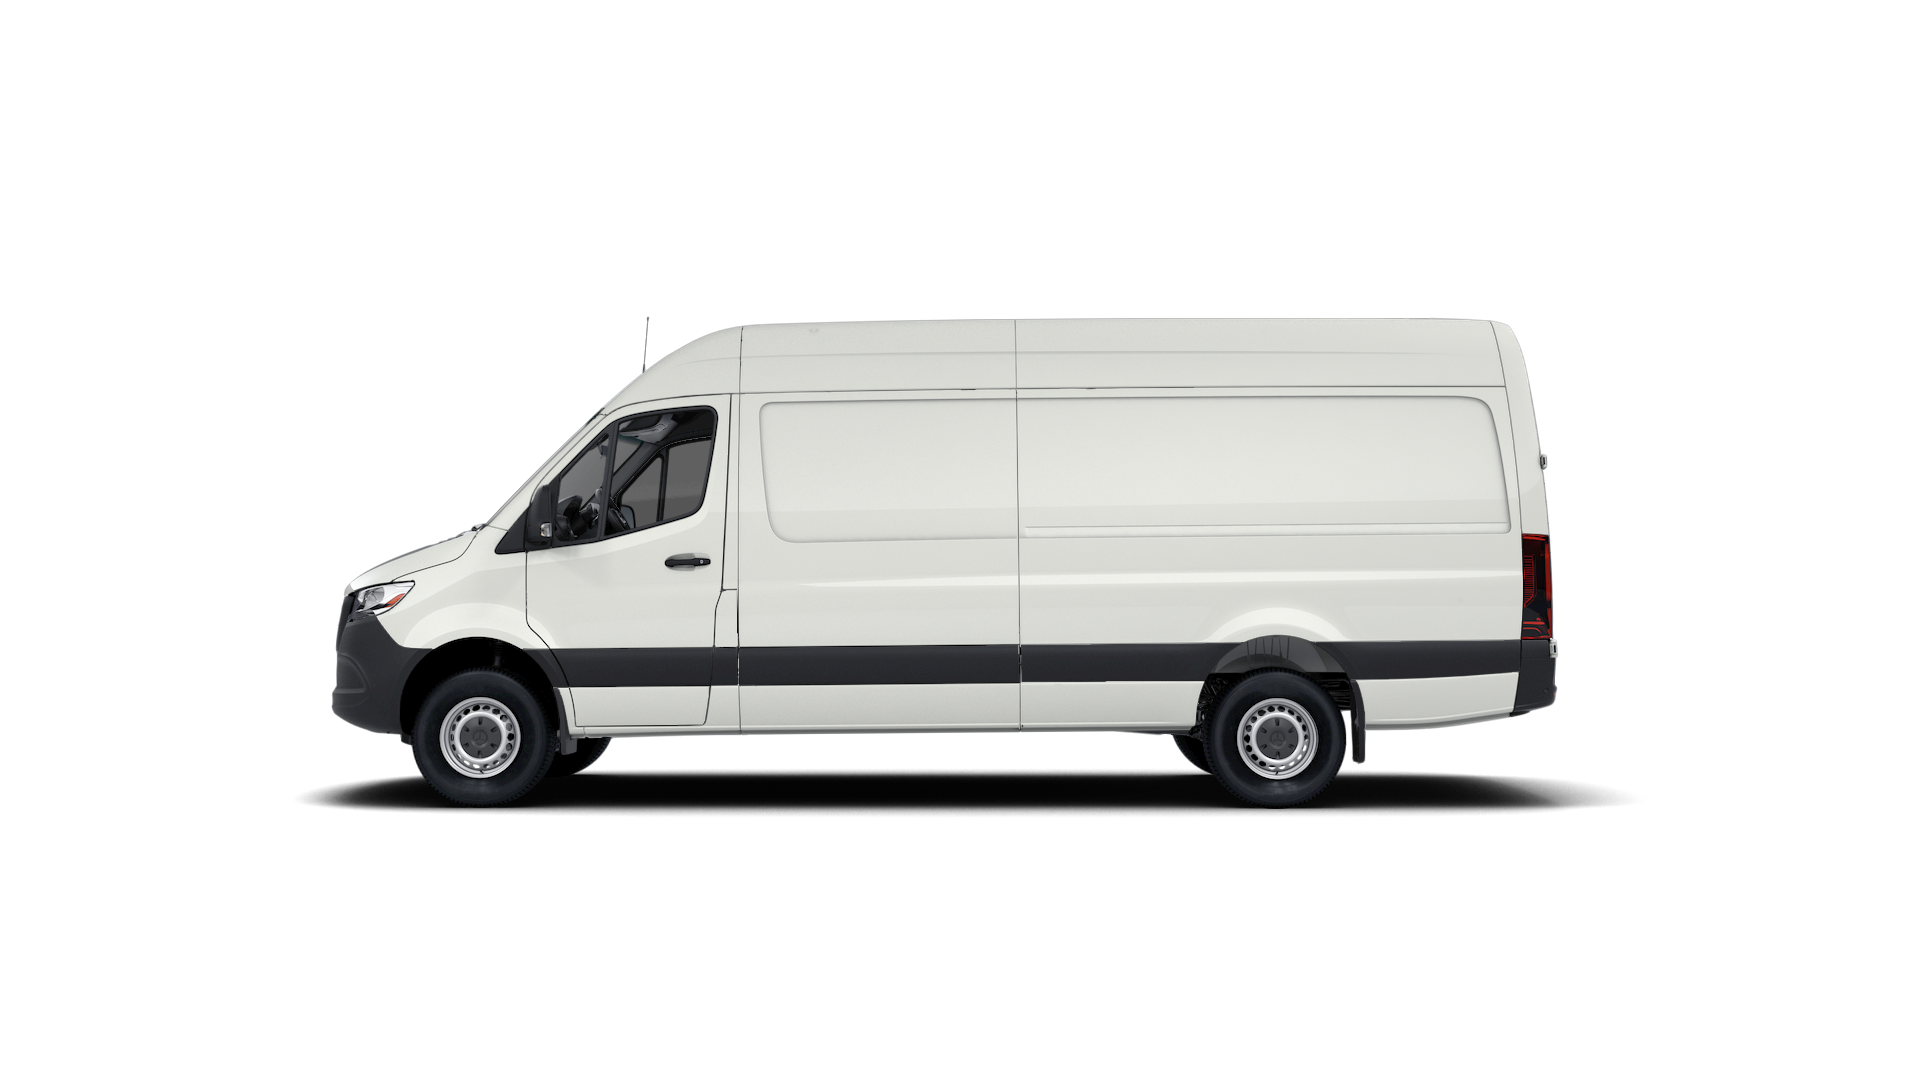 Driver's side front corner view of a Grey White SPRINTER Cargo Van